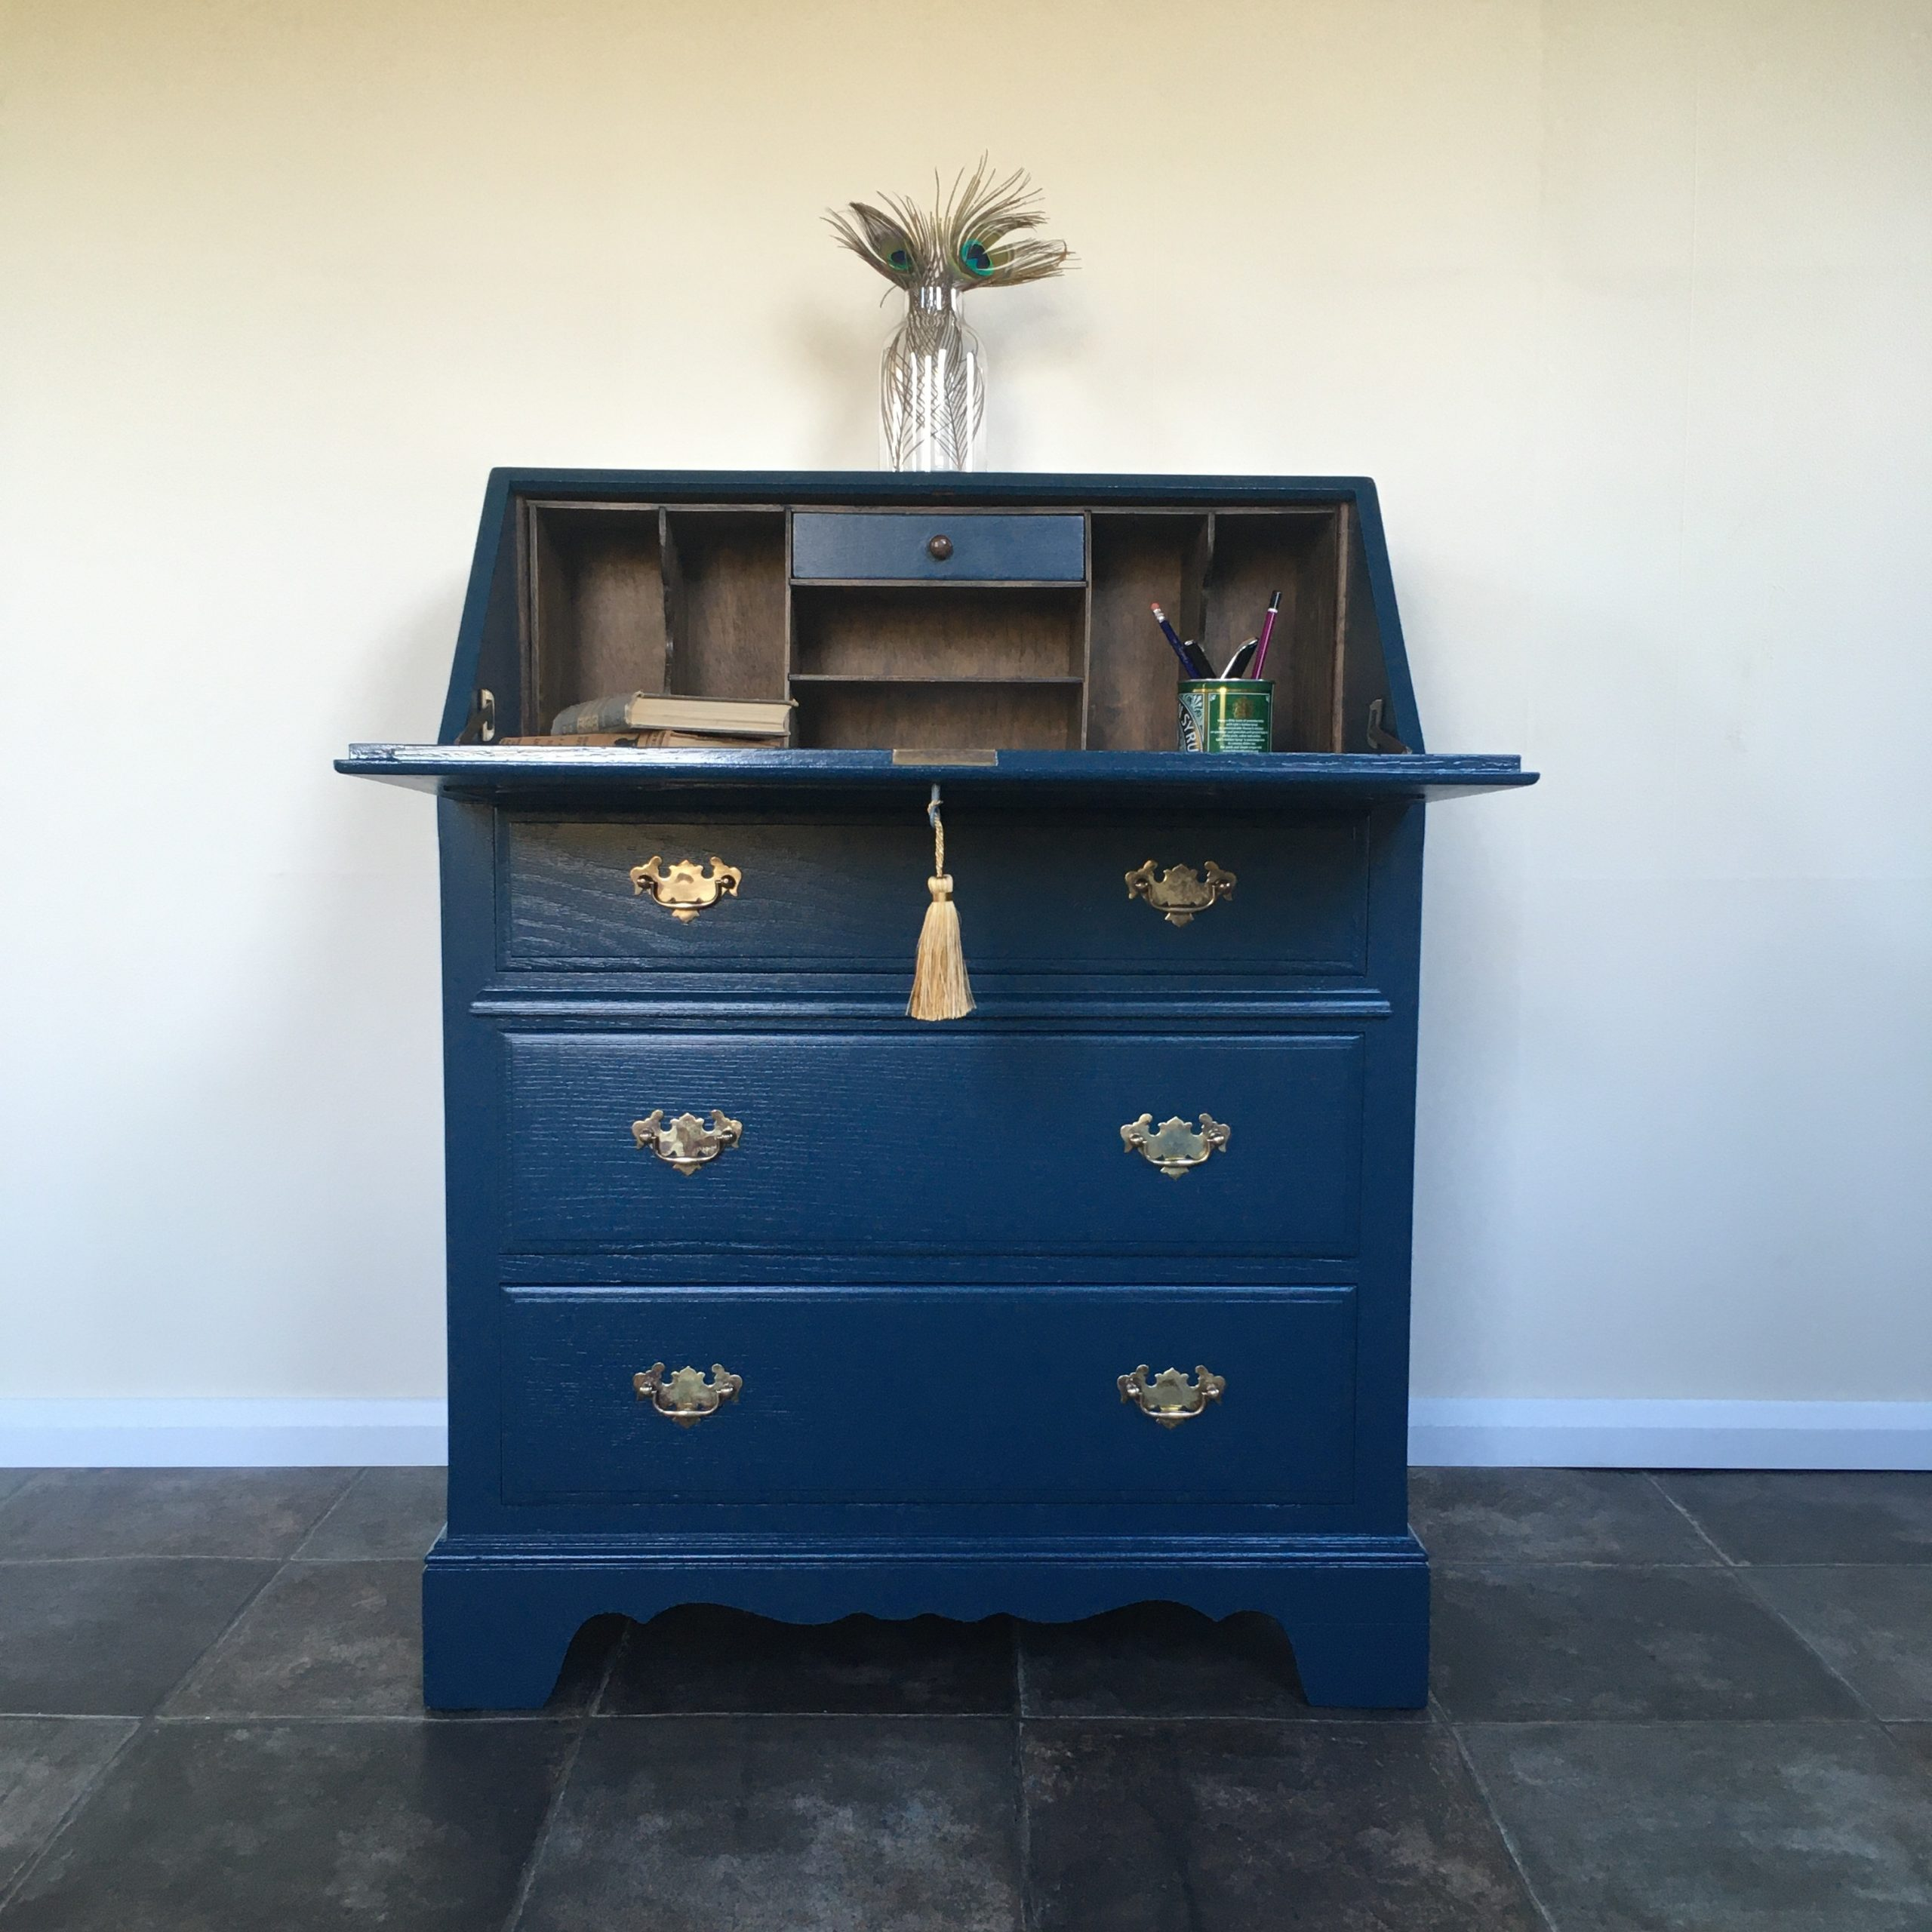 The joy of upcycling with Yellow Pigeon Bespoke Furniture